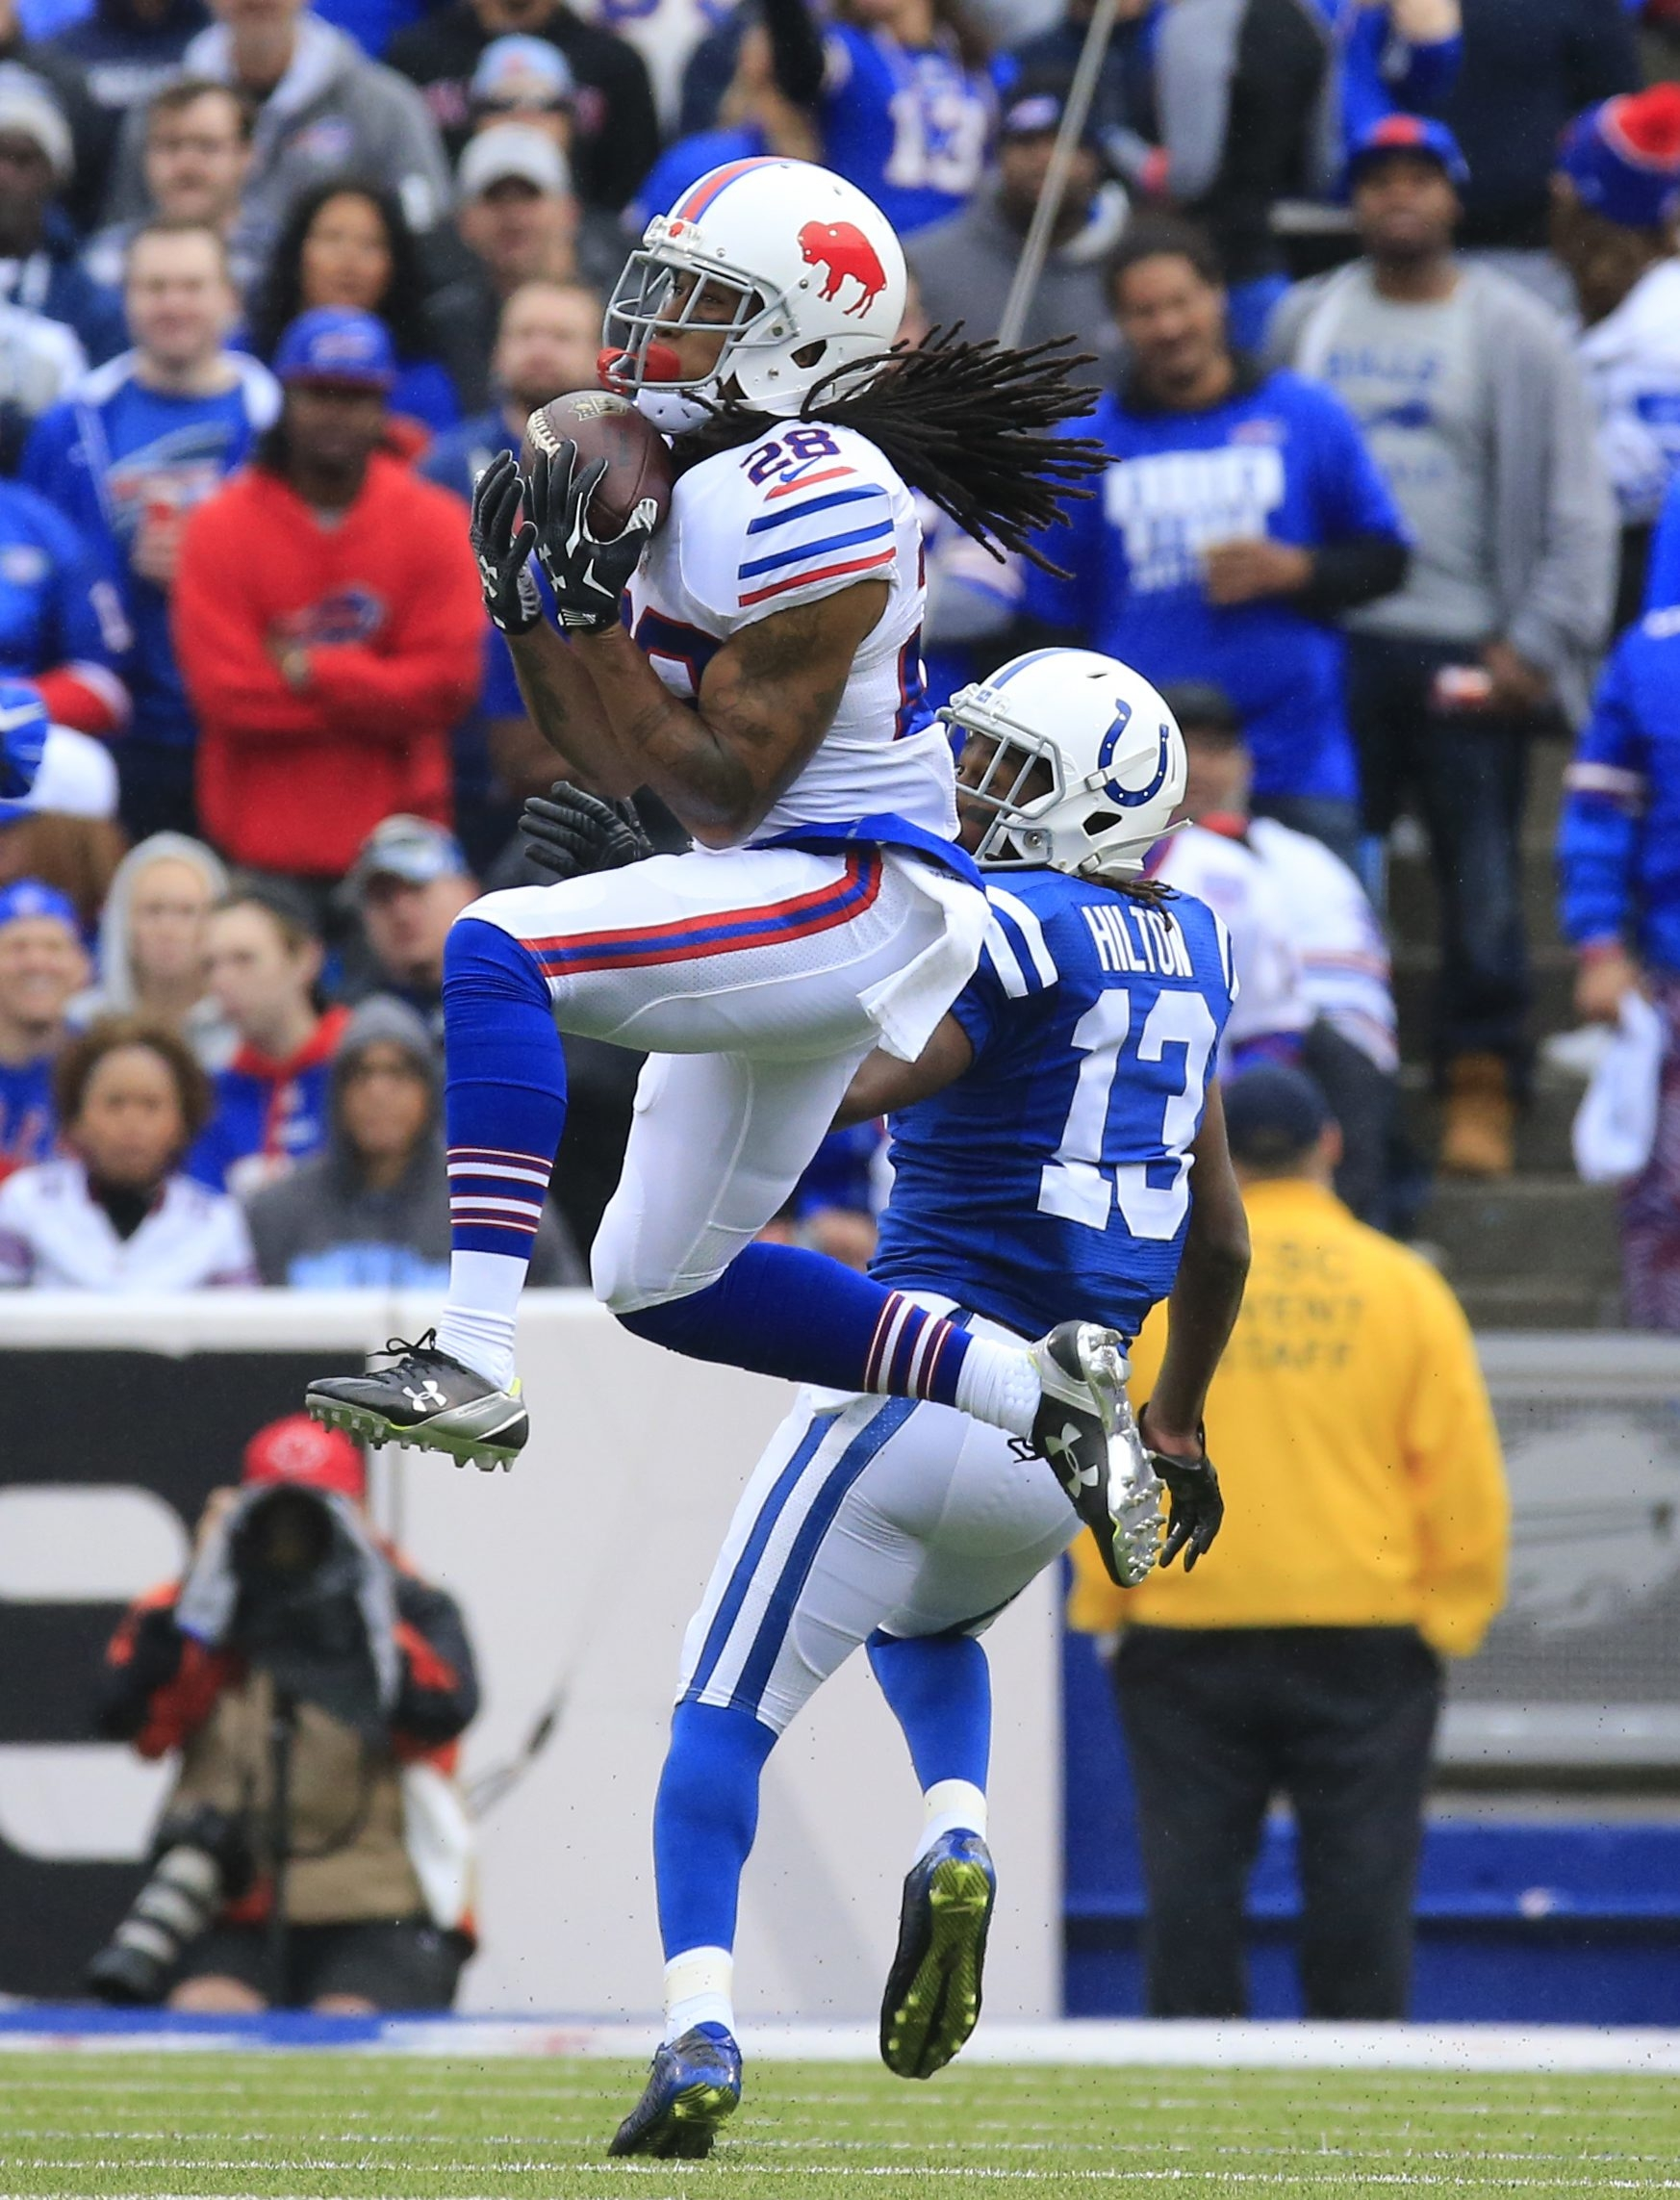 Bills cornerback Ronald Darby intercepts a pass intended for Colts receiver T.Y. Hilton.